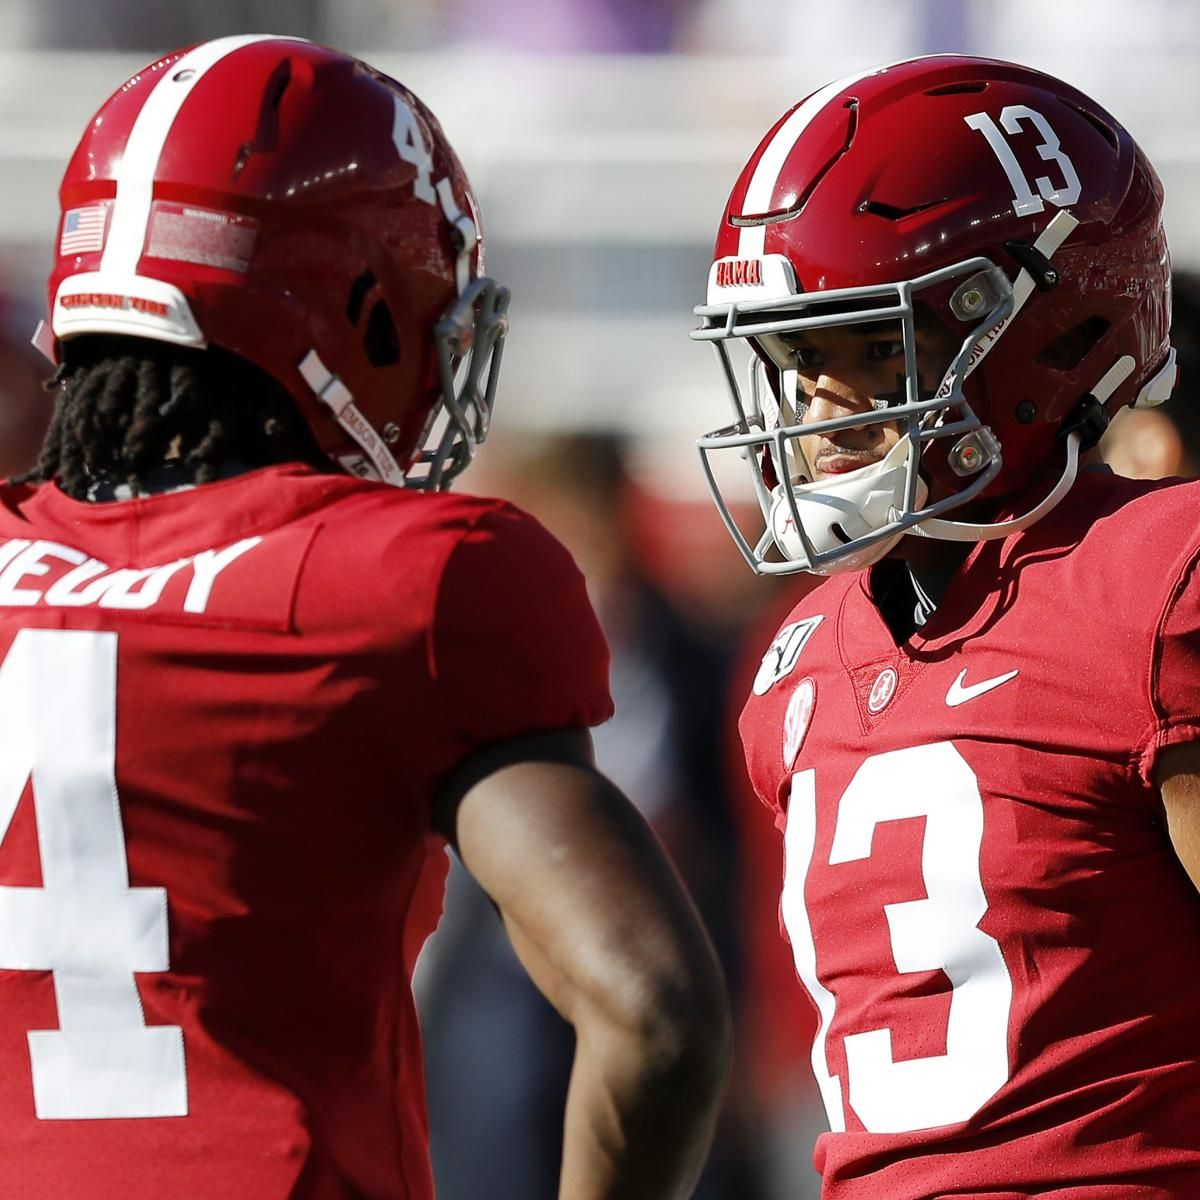 Who are the top players in the 2020 NFL draft class? Our